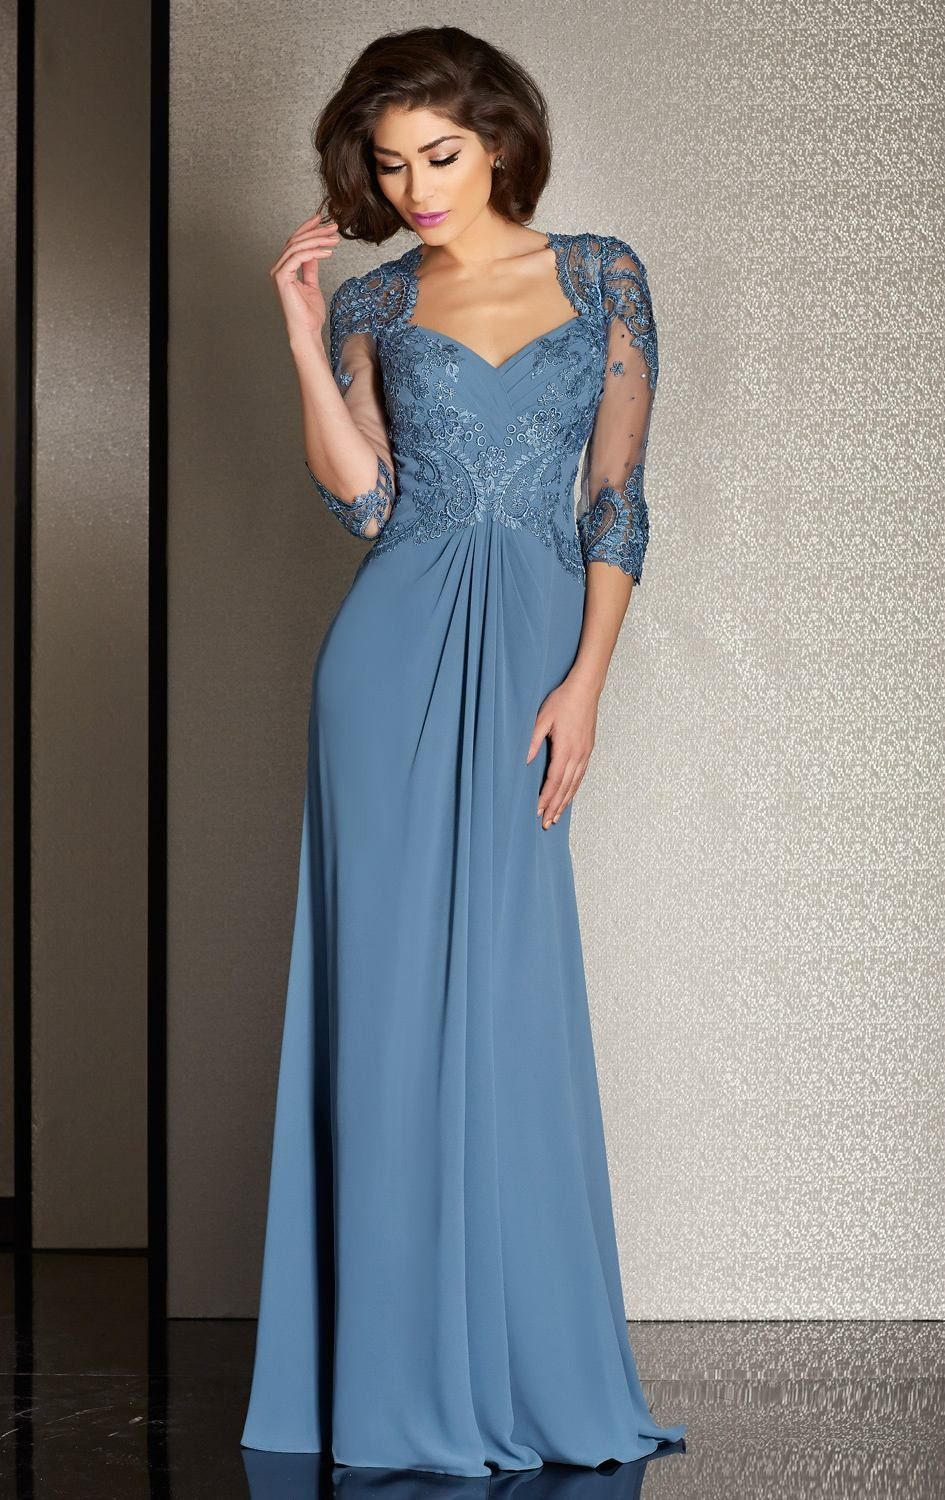 Elegant 3/4 Sleeves Chiffon Mother Of The Bride Dress | Pinterest ...